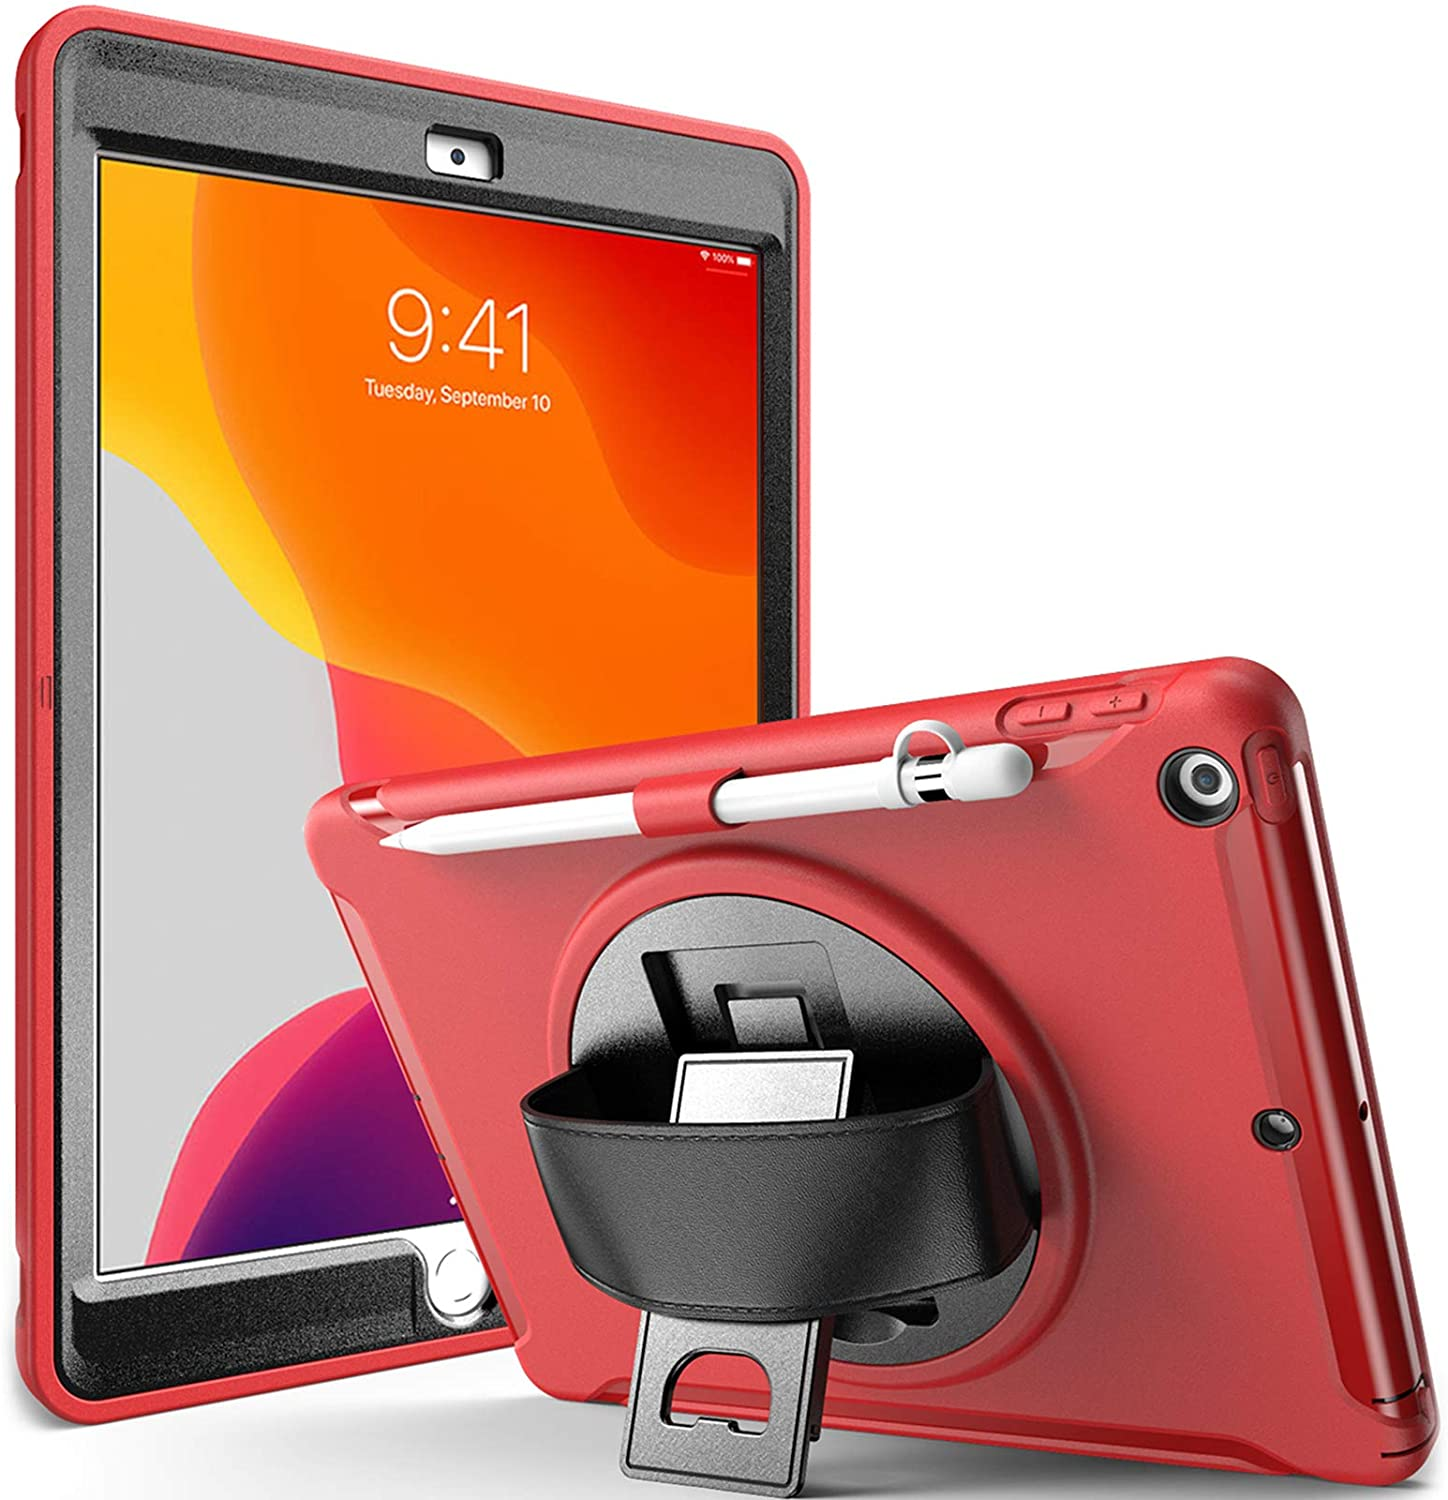 """ProCase iPad 10.2 Case 2020 8th Generation / 2019 7th Generation iPad Case, Rugged Heavy Duty Shockproof Cover Case with Handle and Rotating Kickstand for iPad 10.2"""" iPad 8 / iPad 7 -Red"""